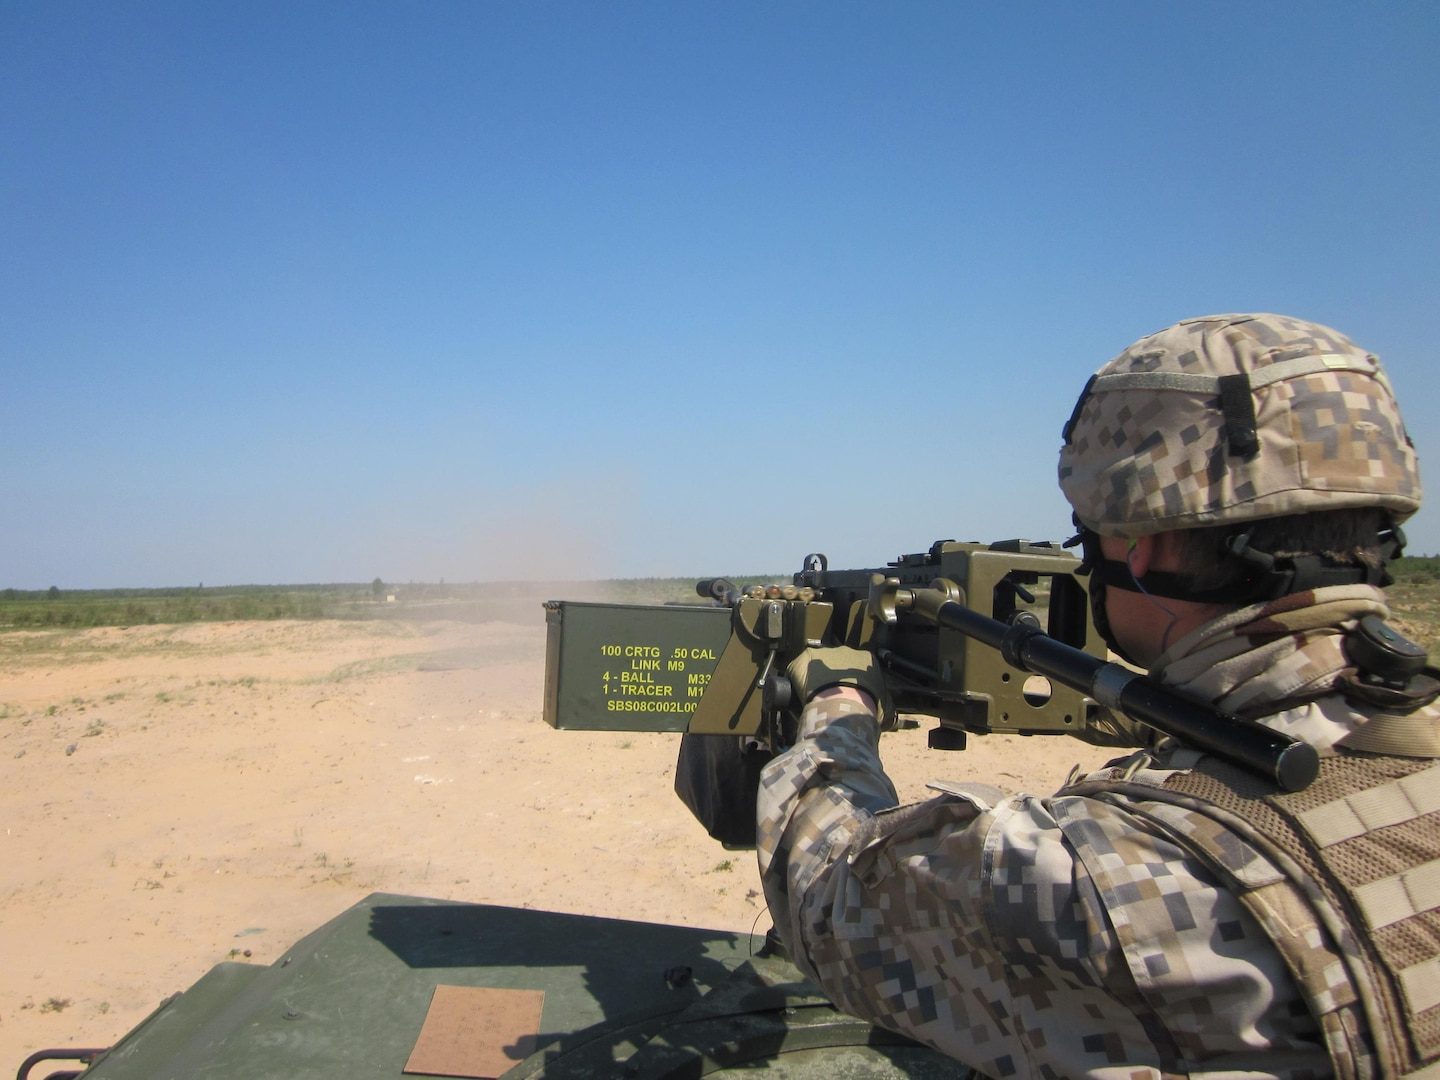 A Latvian soldier engages targets with a High Mobility Multipurpose Wheeled Vehicle mounted .50 machine gun during an exercise as part of joint U.S./Latvian training for Operation Summer Shield in Adaži, Latvia, on May 24, 2011. Latvia is paired with Michigan in the National Guard State Partnership Program.